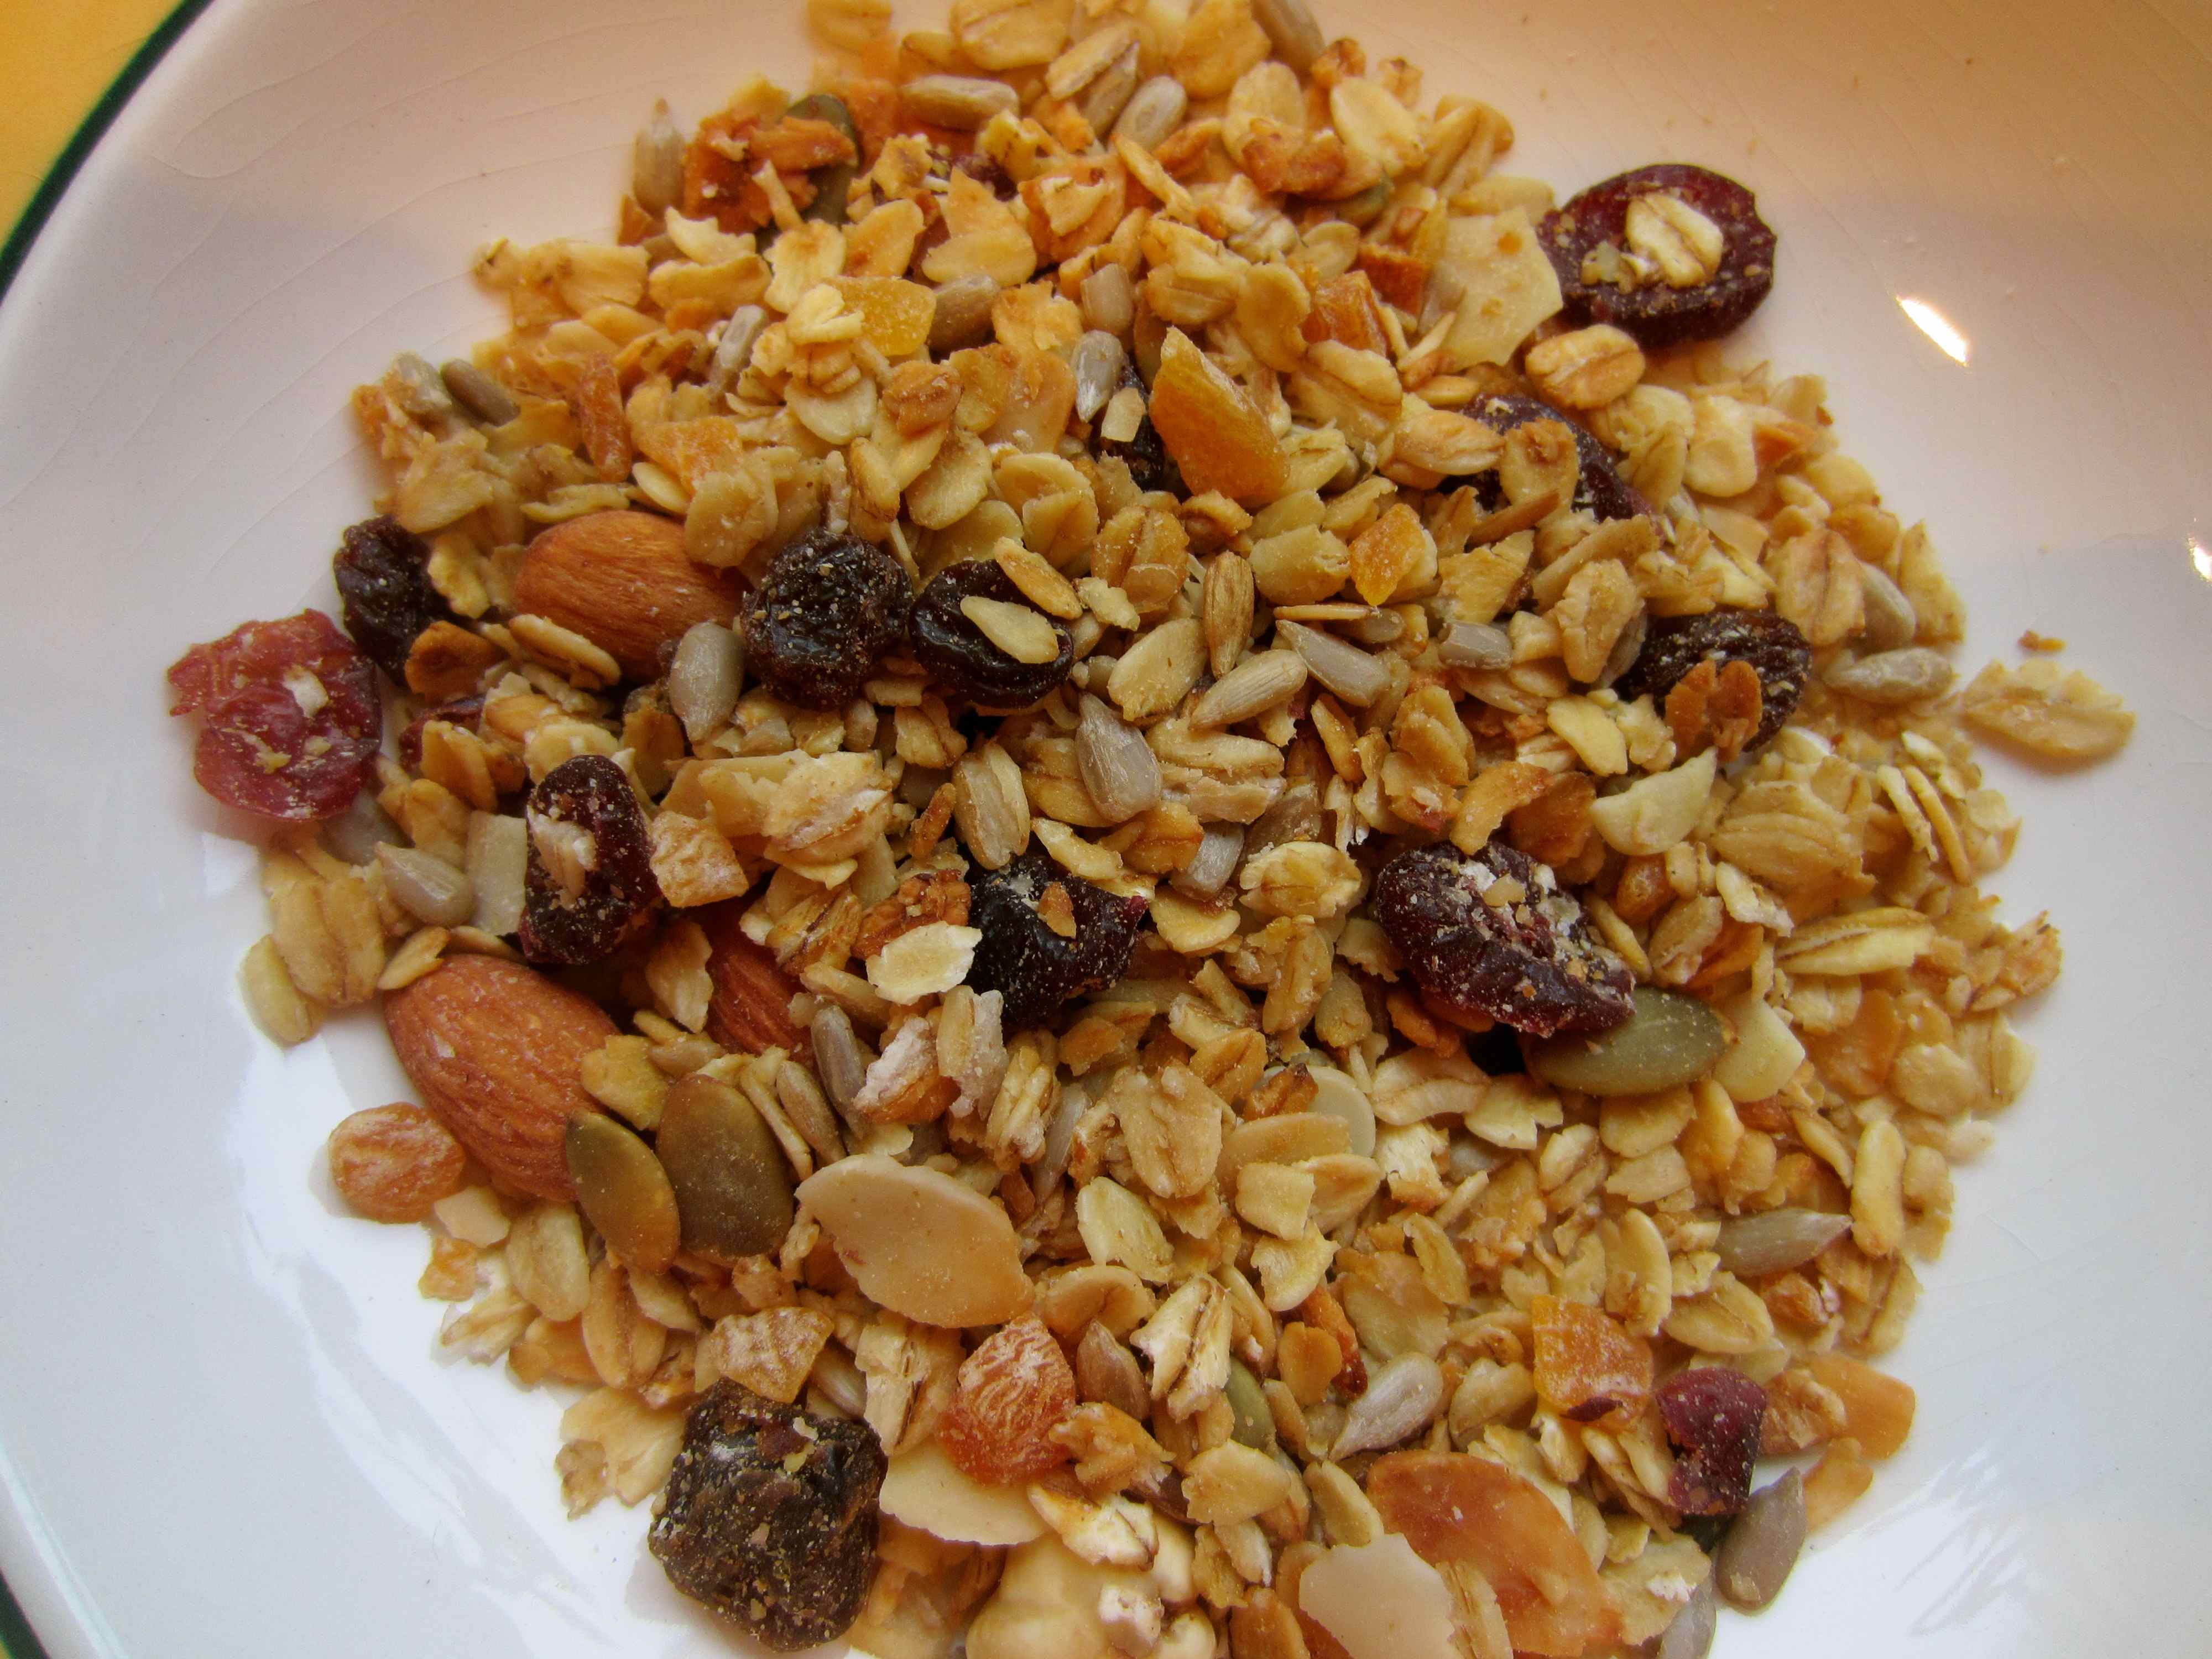 Muesli Food For Health